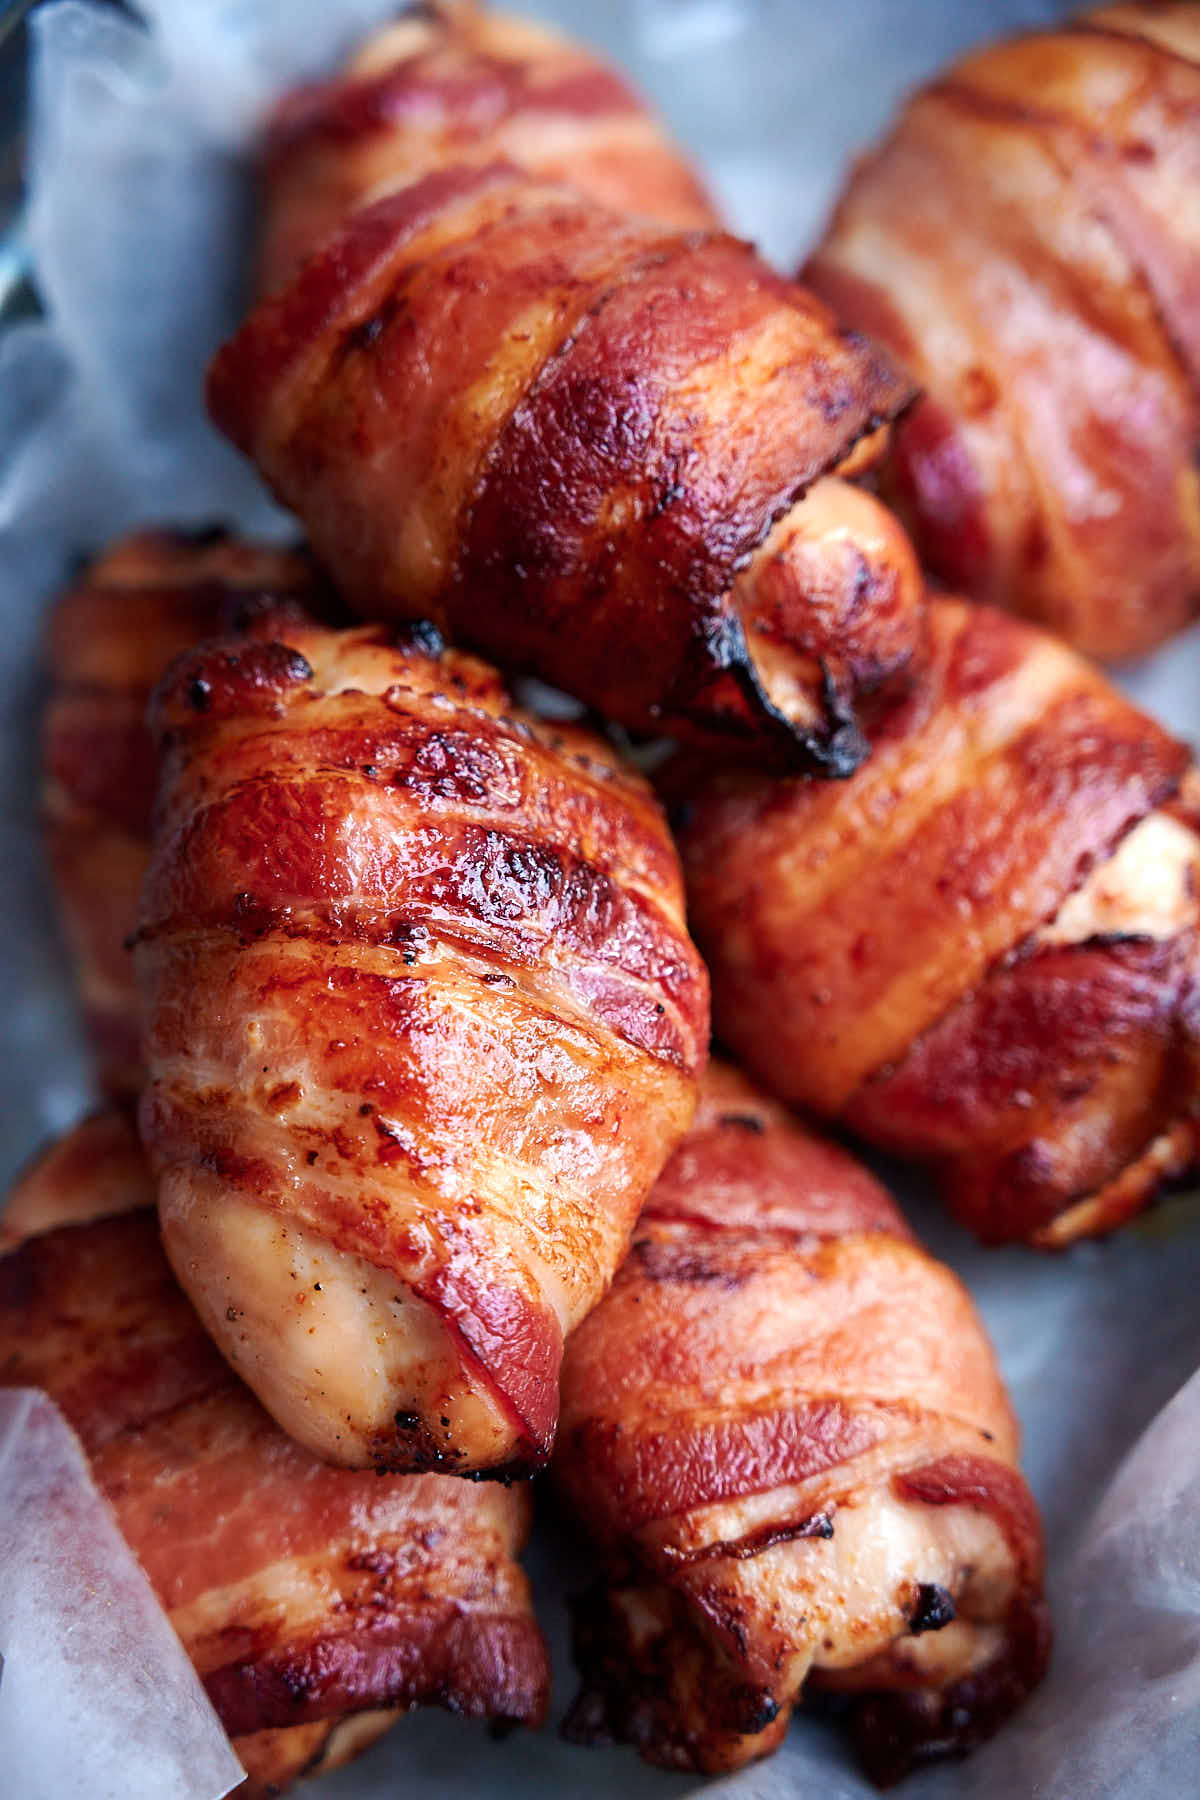 Chicken thighs wrapped in bacon, cooked, in basket lined with white wax paper.